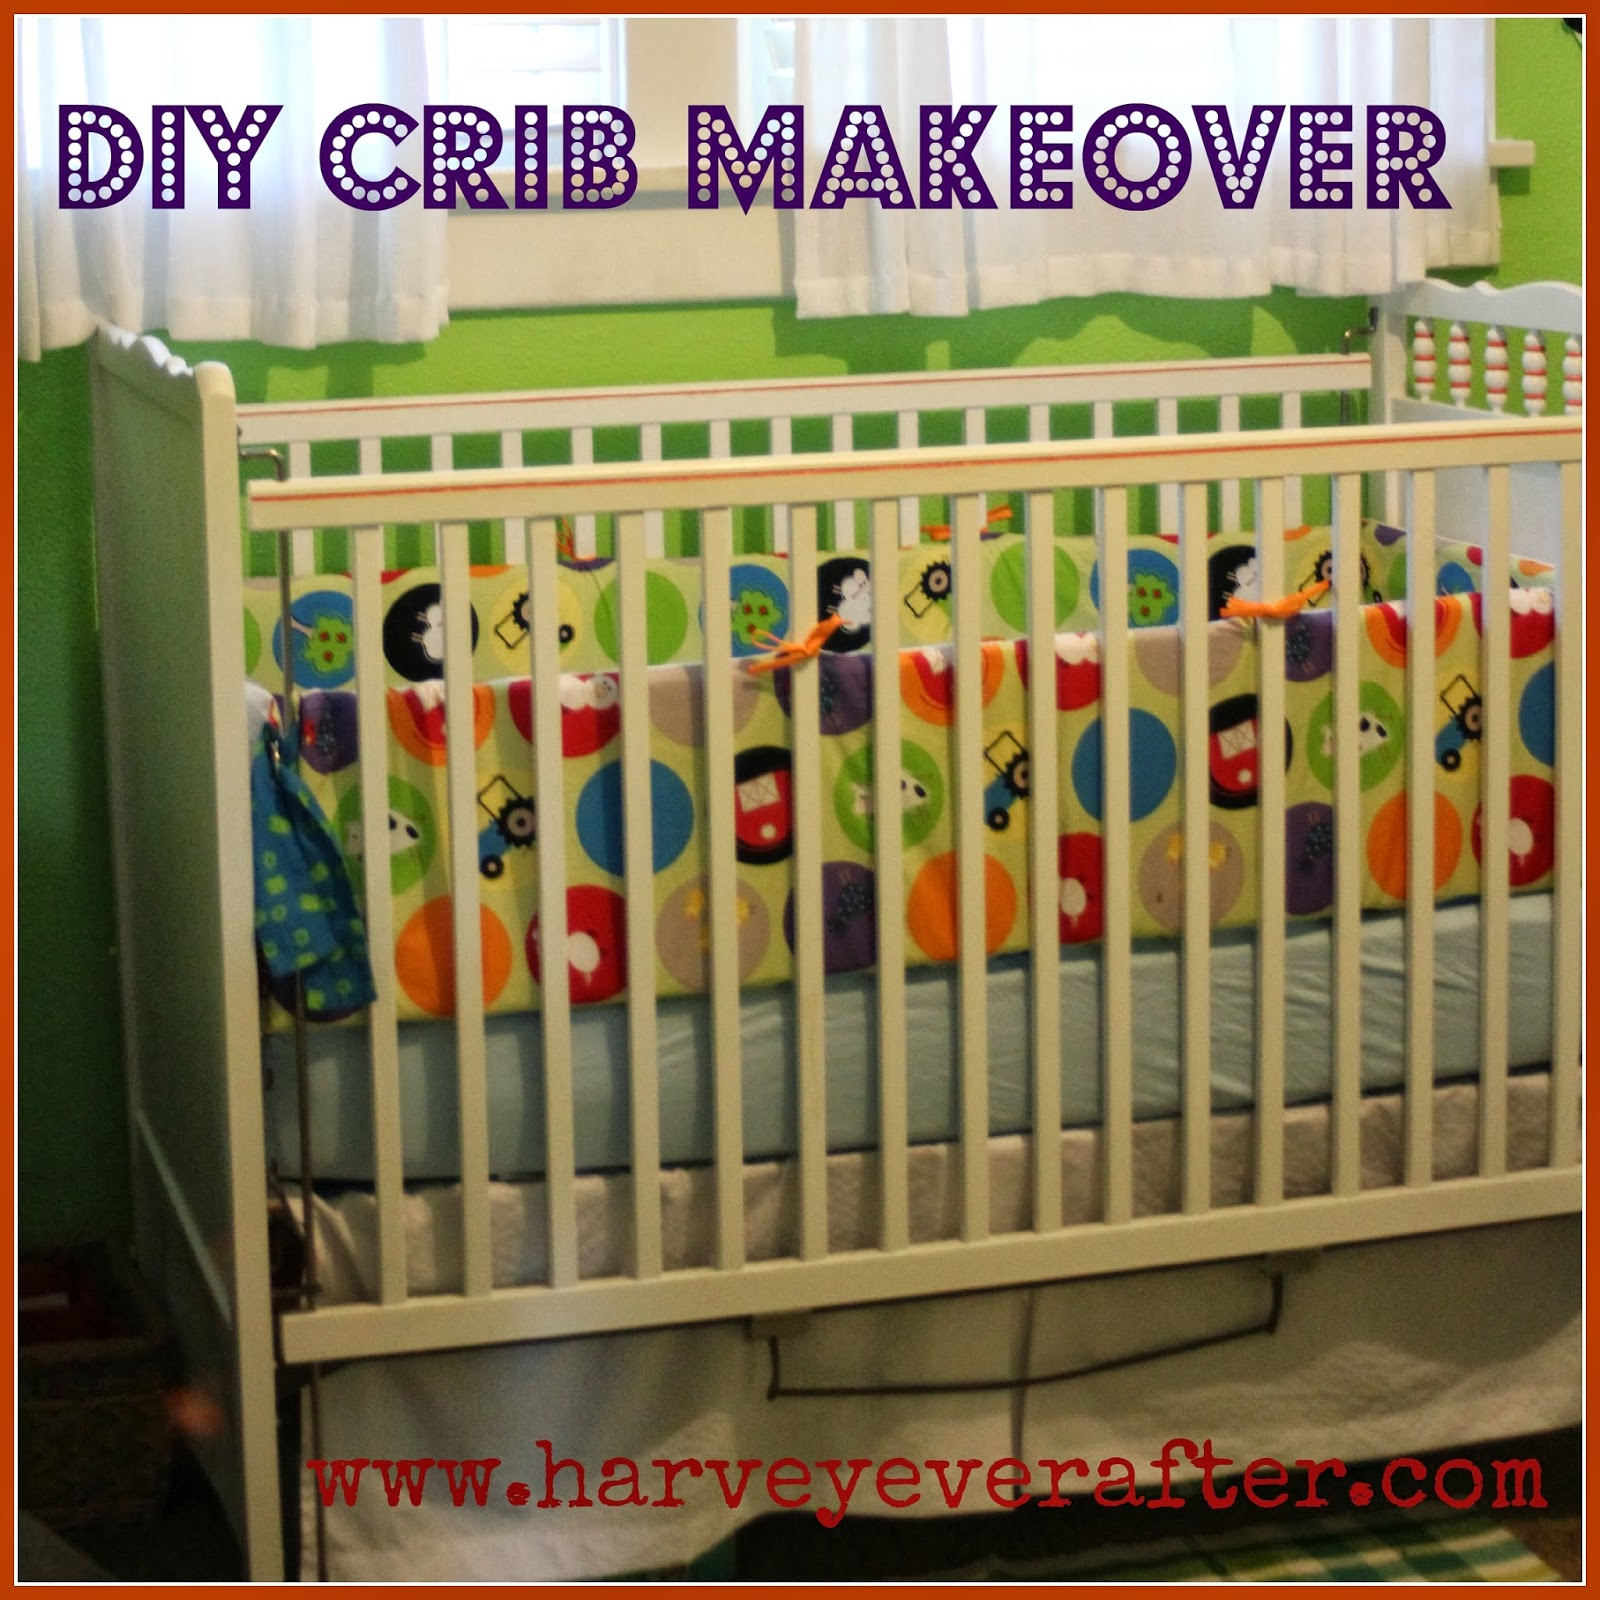 inner fun cribs that two how to so this on or paint means searching a sit was for coats inside assembled it tutorial crib we painted the bars get baby safe and with had seal yes i